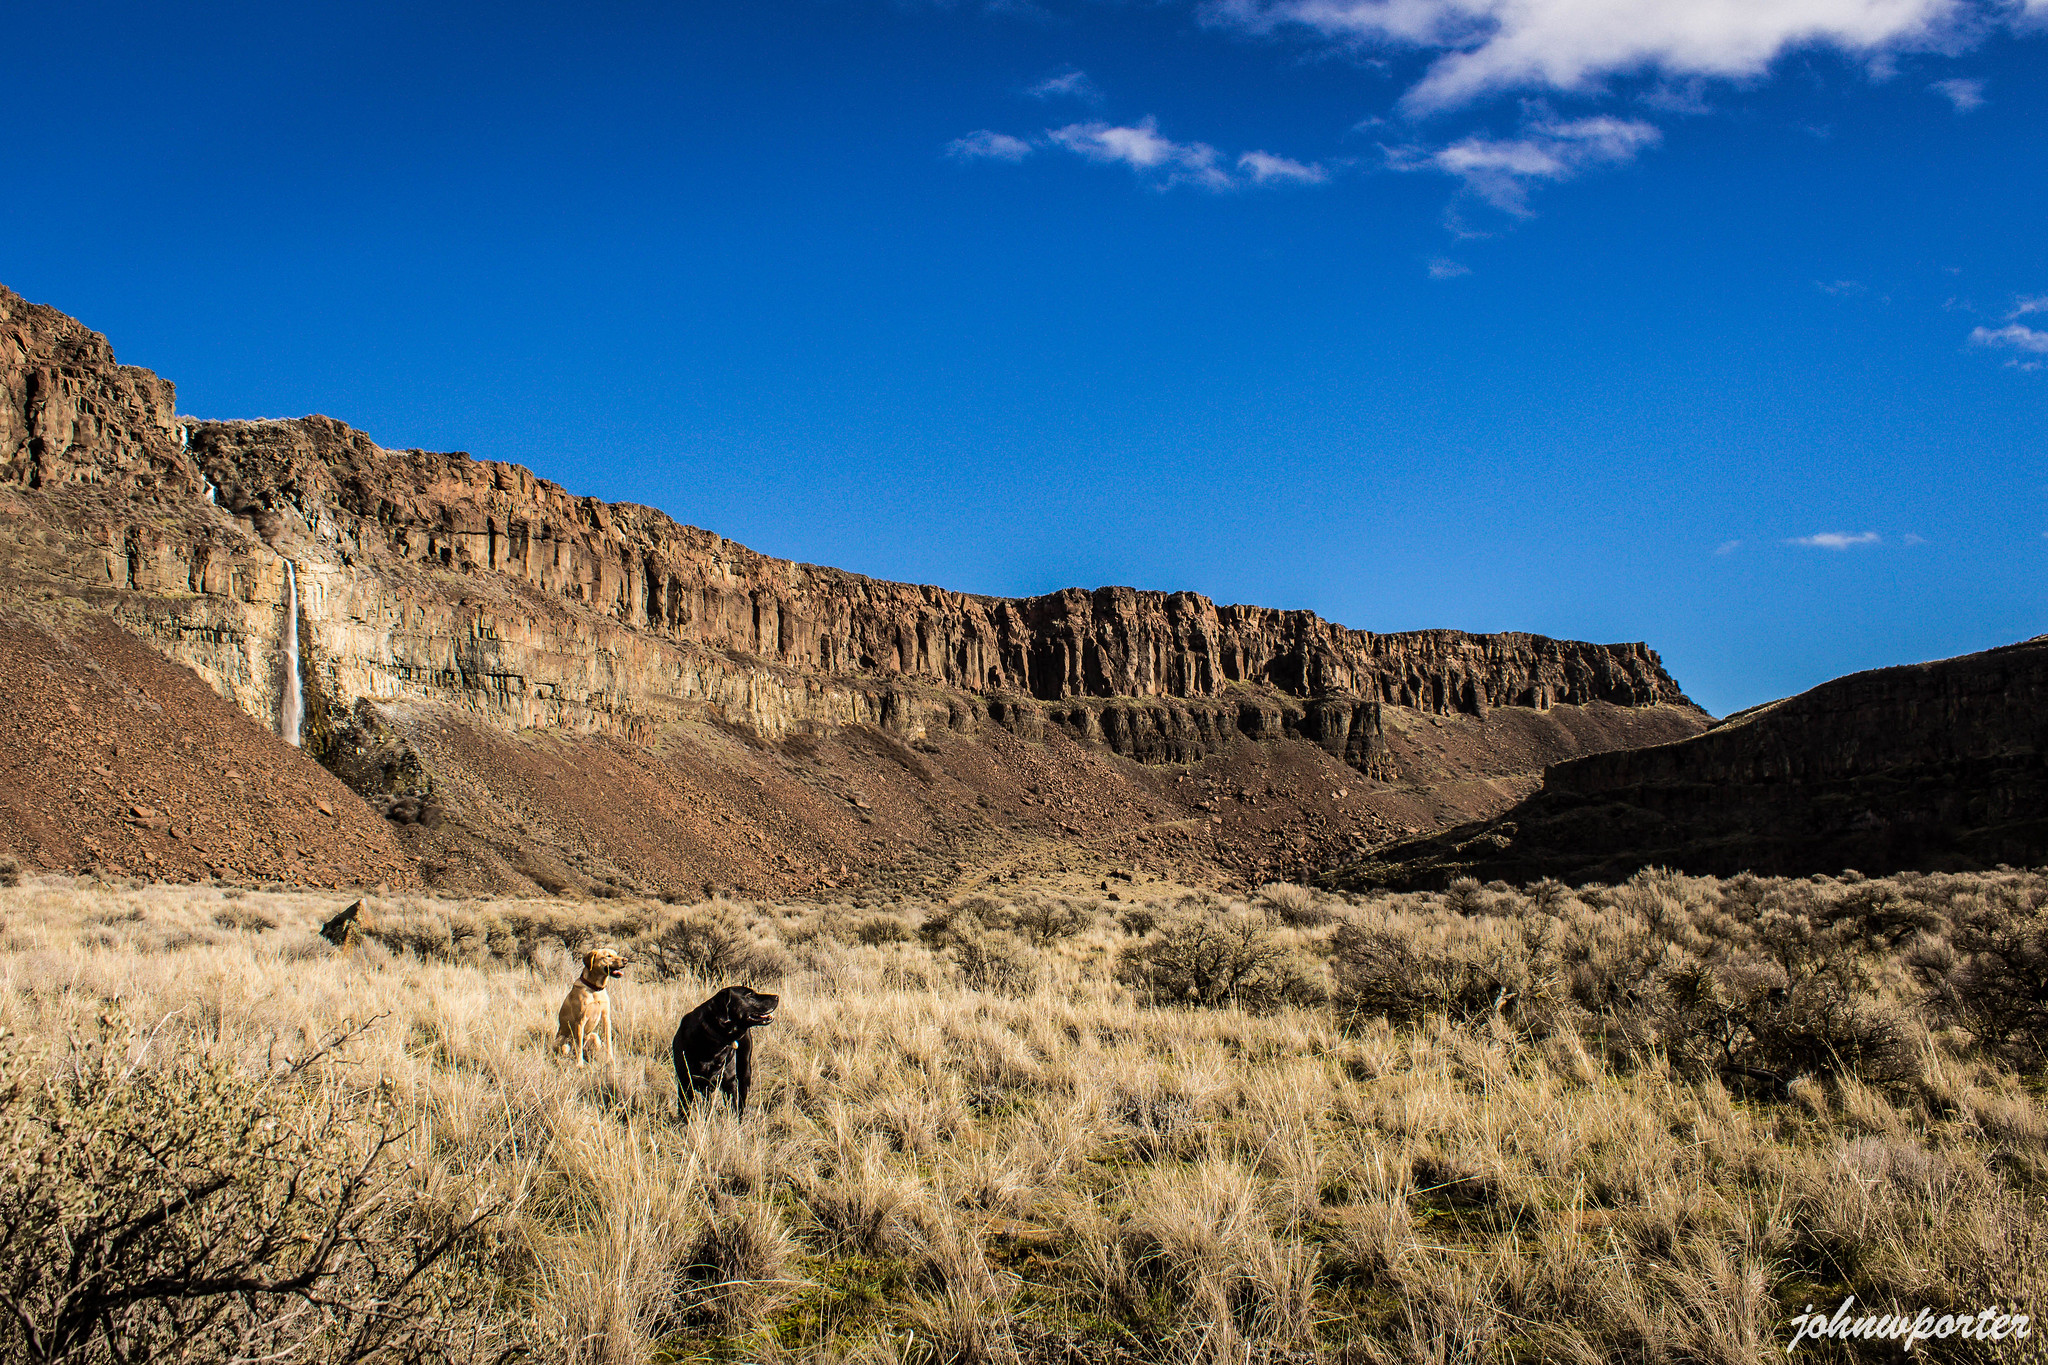 Desert dogs in Frenchman Coulee